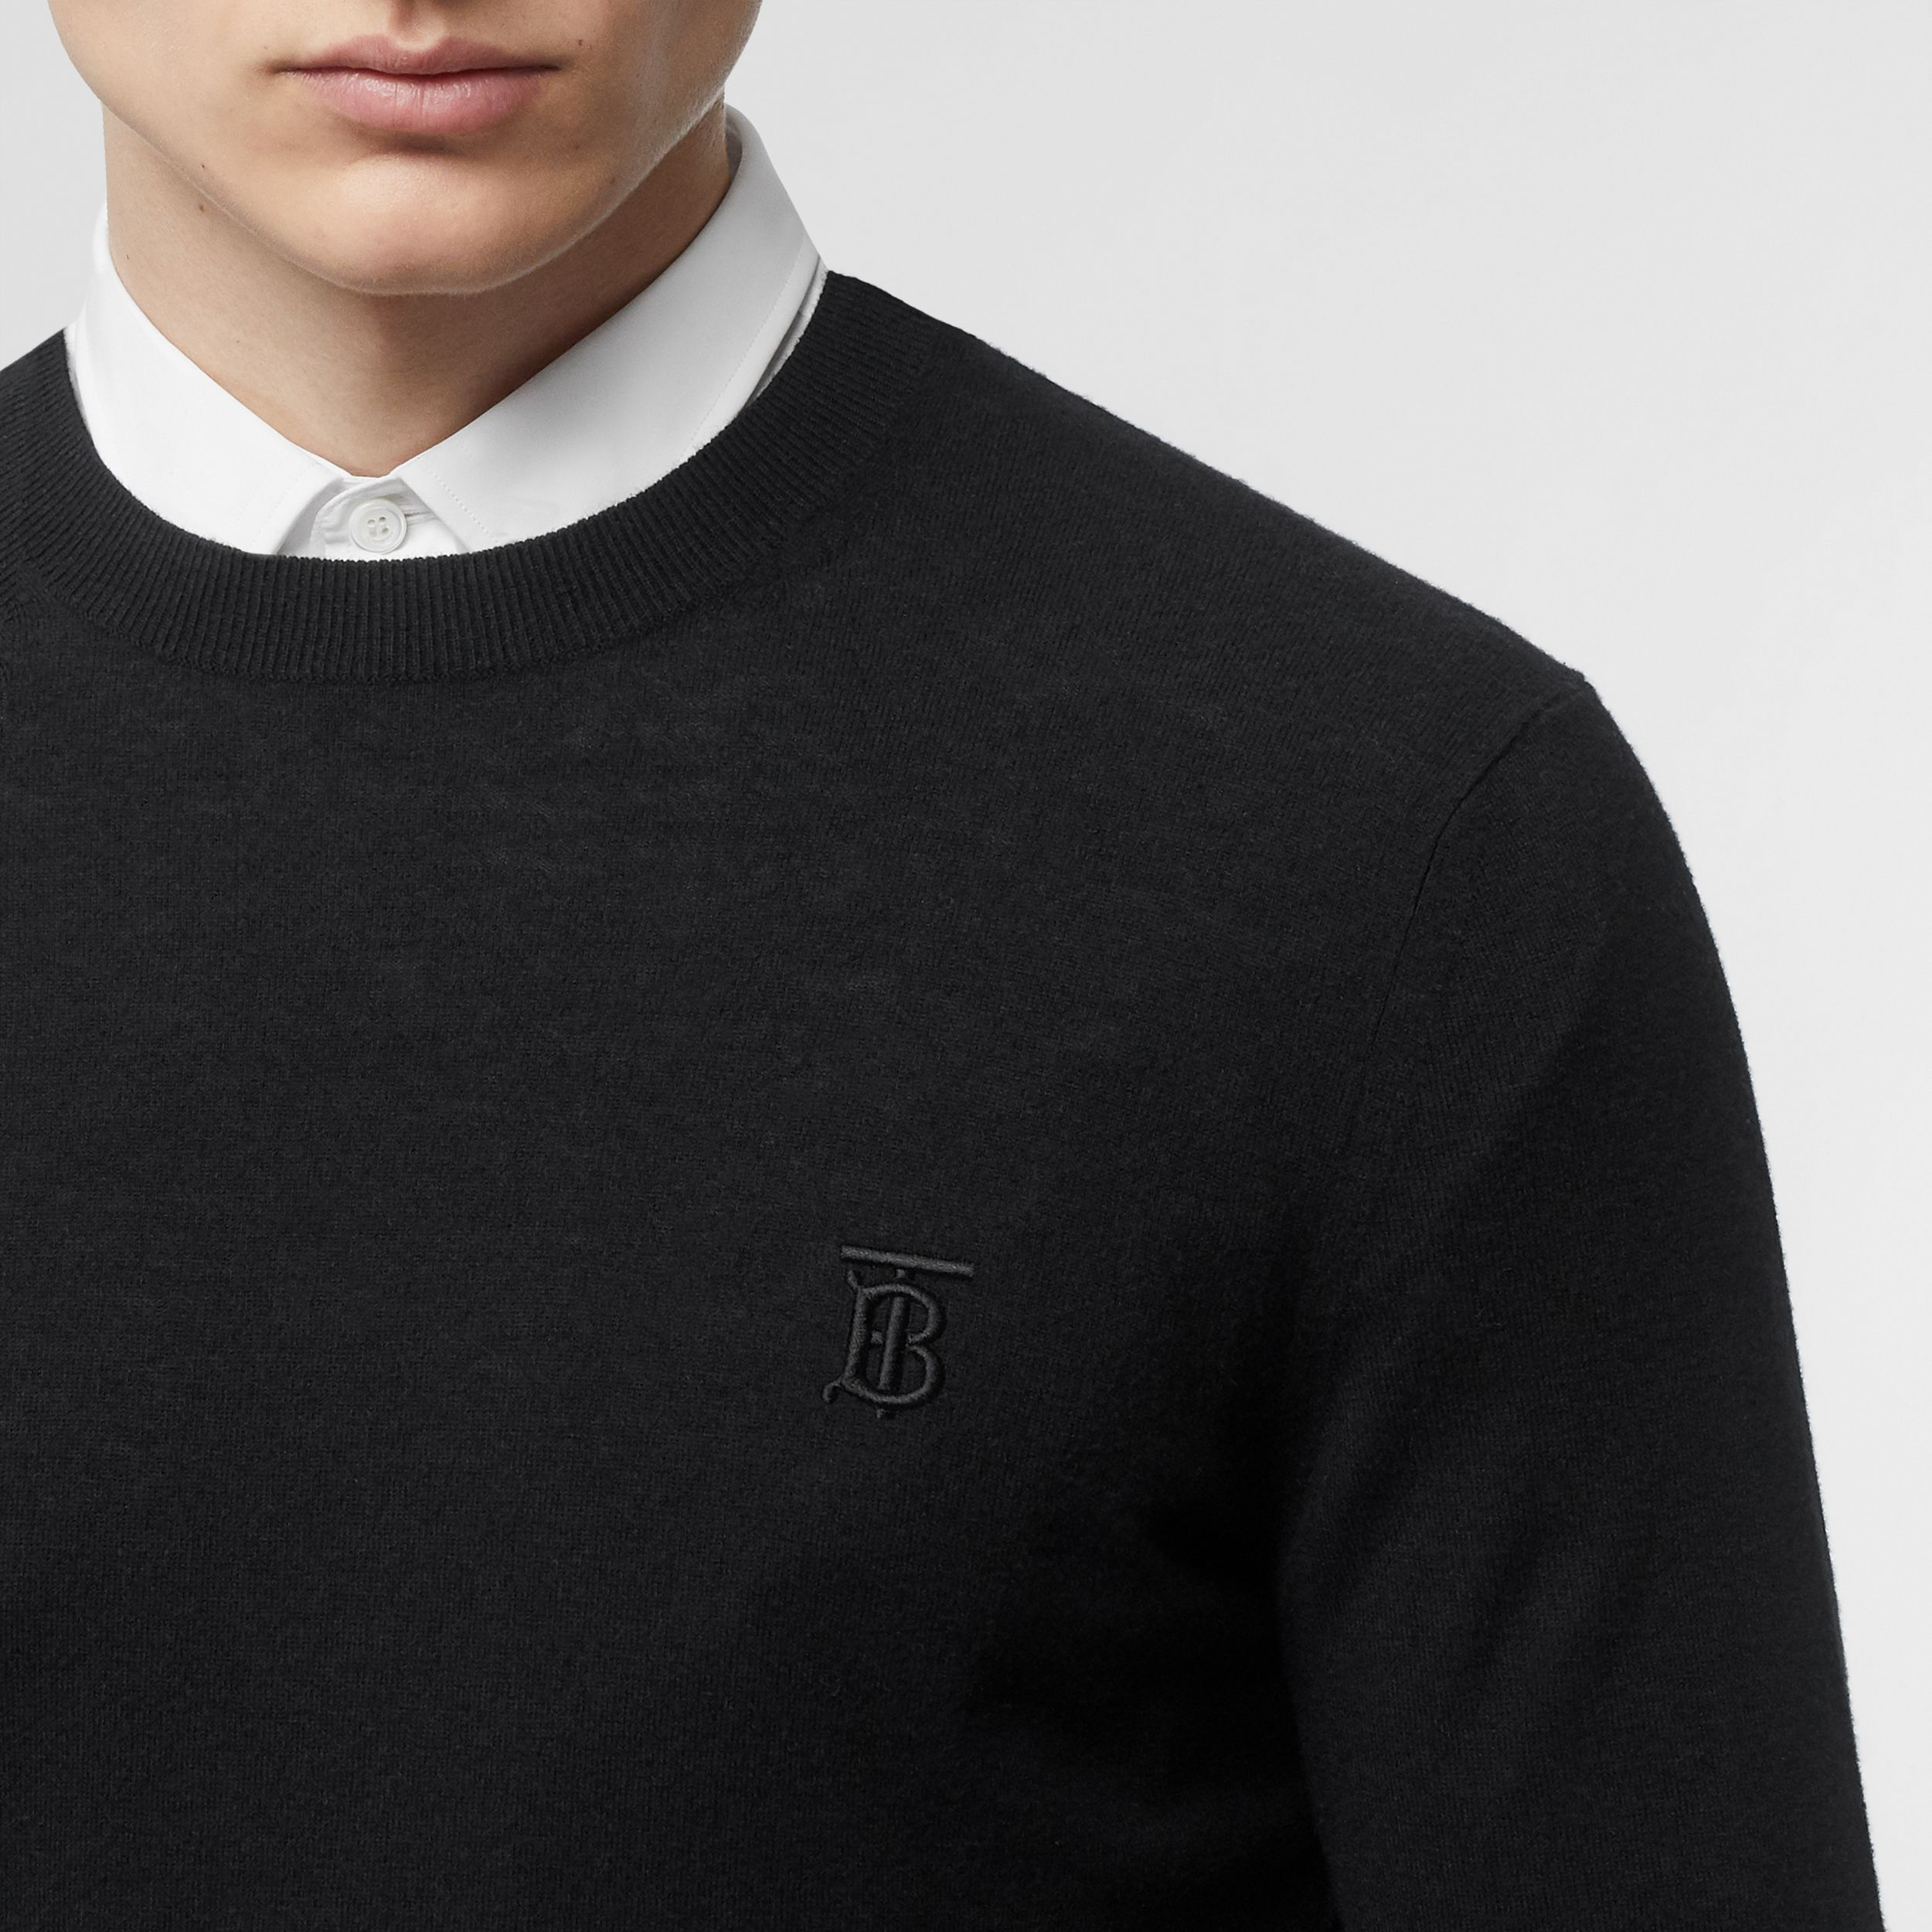 Monogram Motif Cashmere Sweater in Black - Men | Burberry - 2